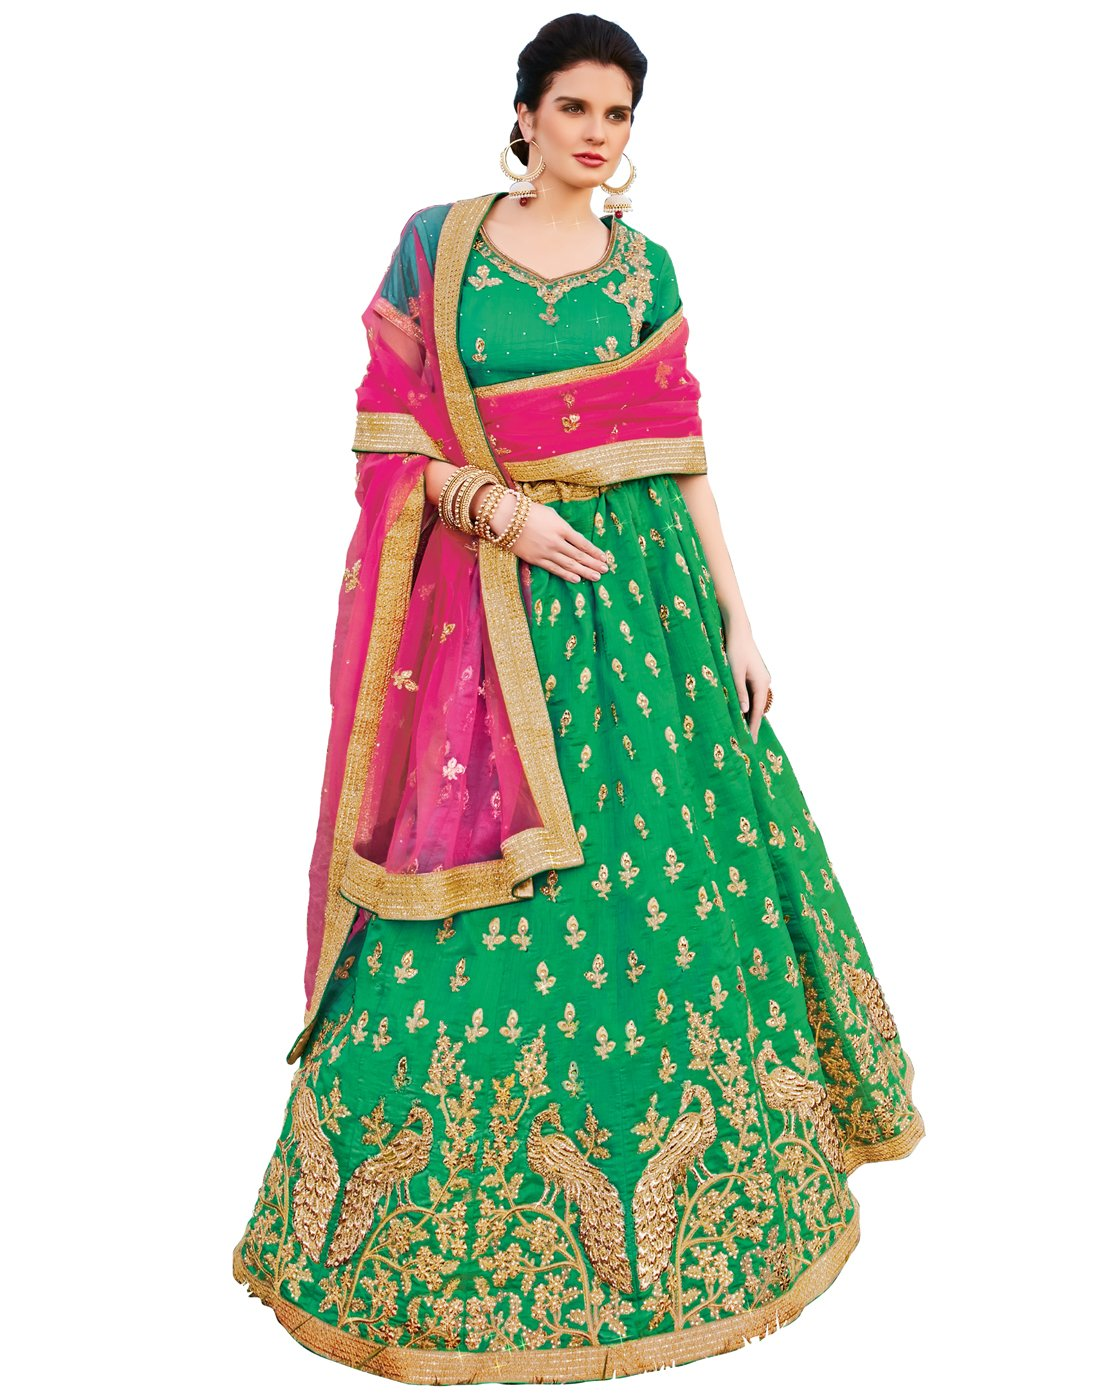 DesiButik's Wedding Wear Ravishing Rama Banarasi Silk Lehenga